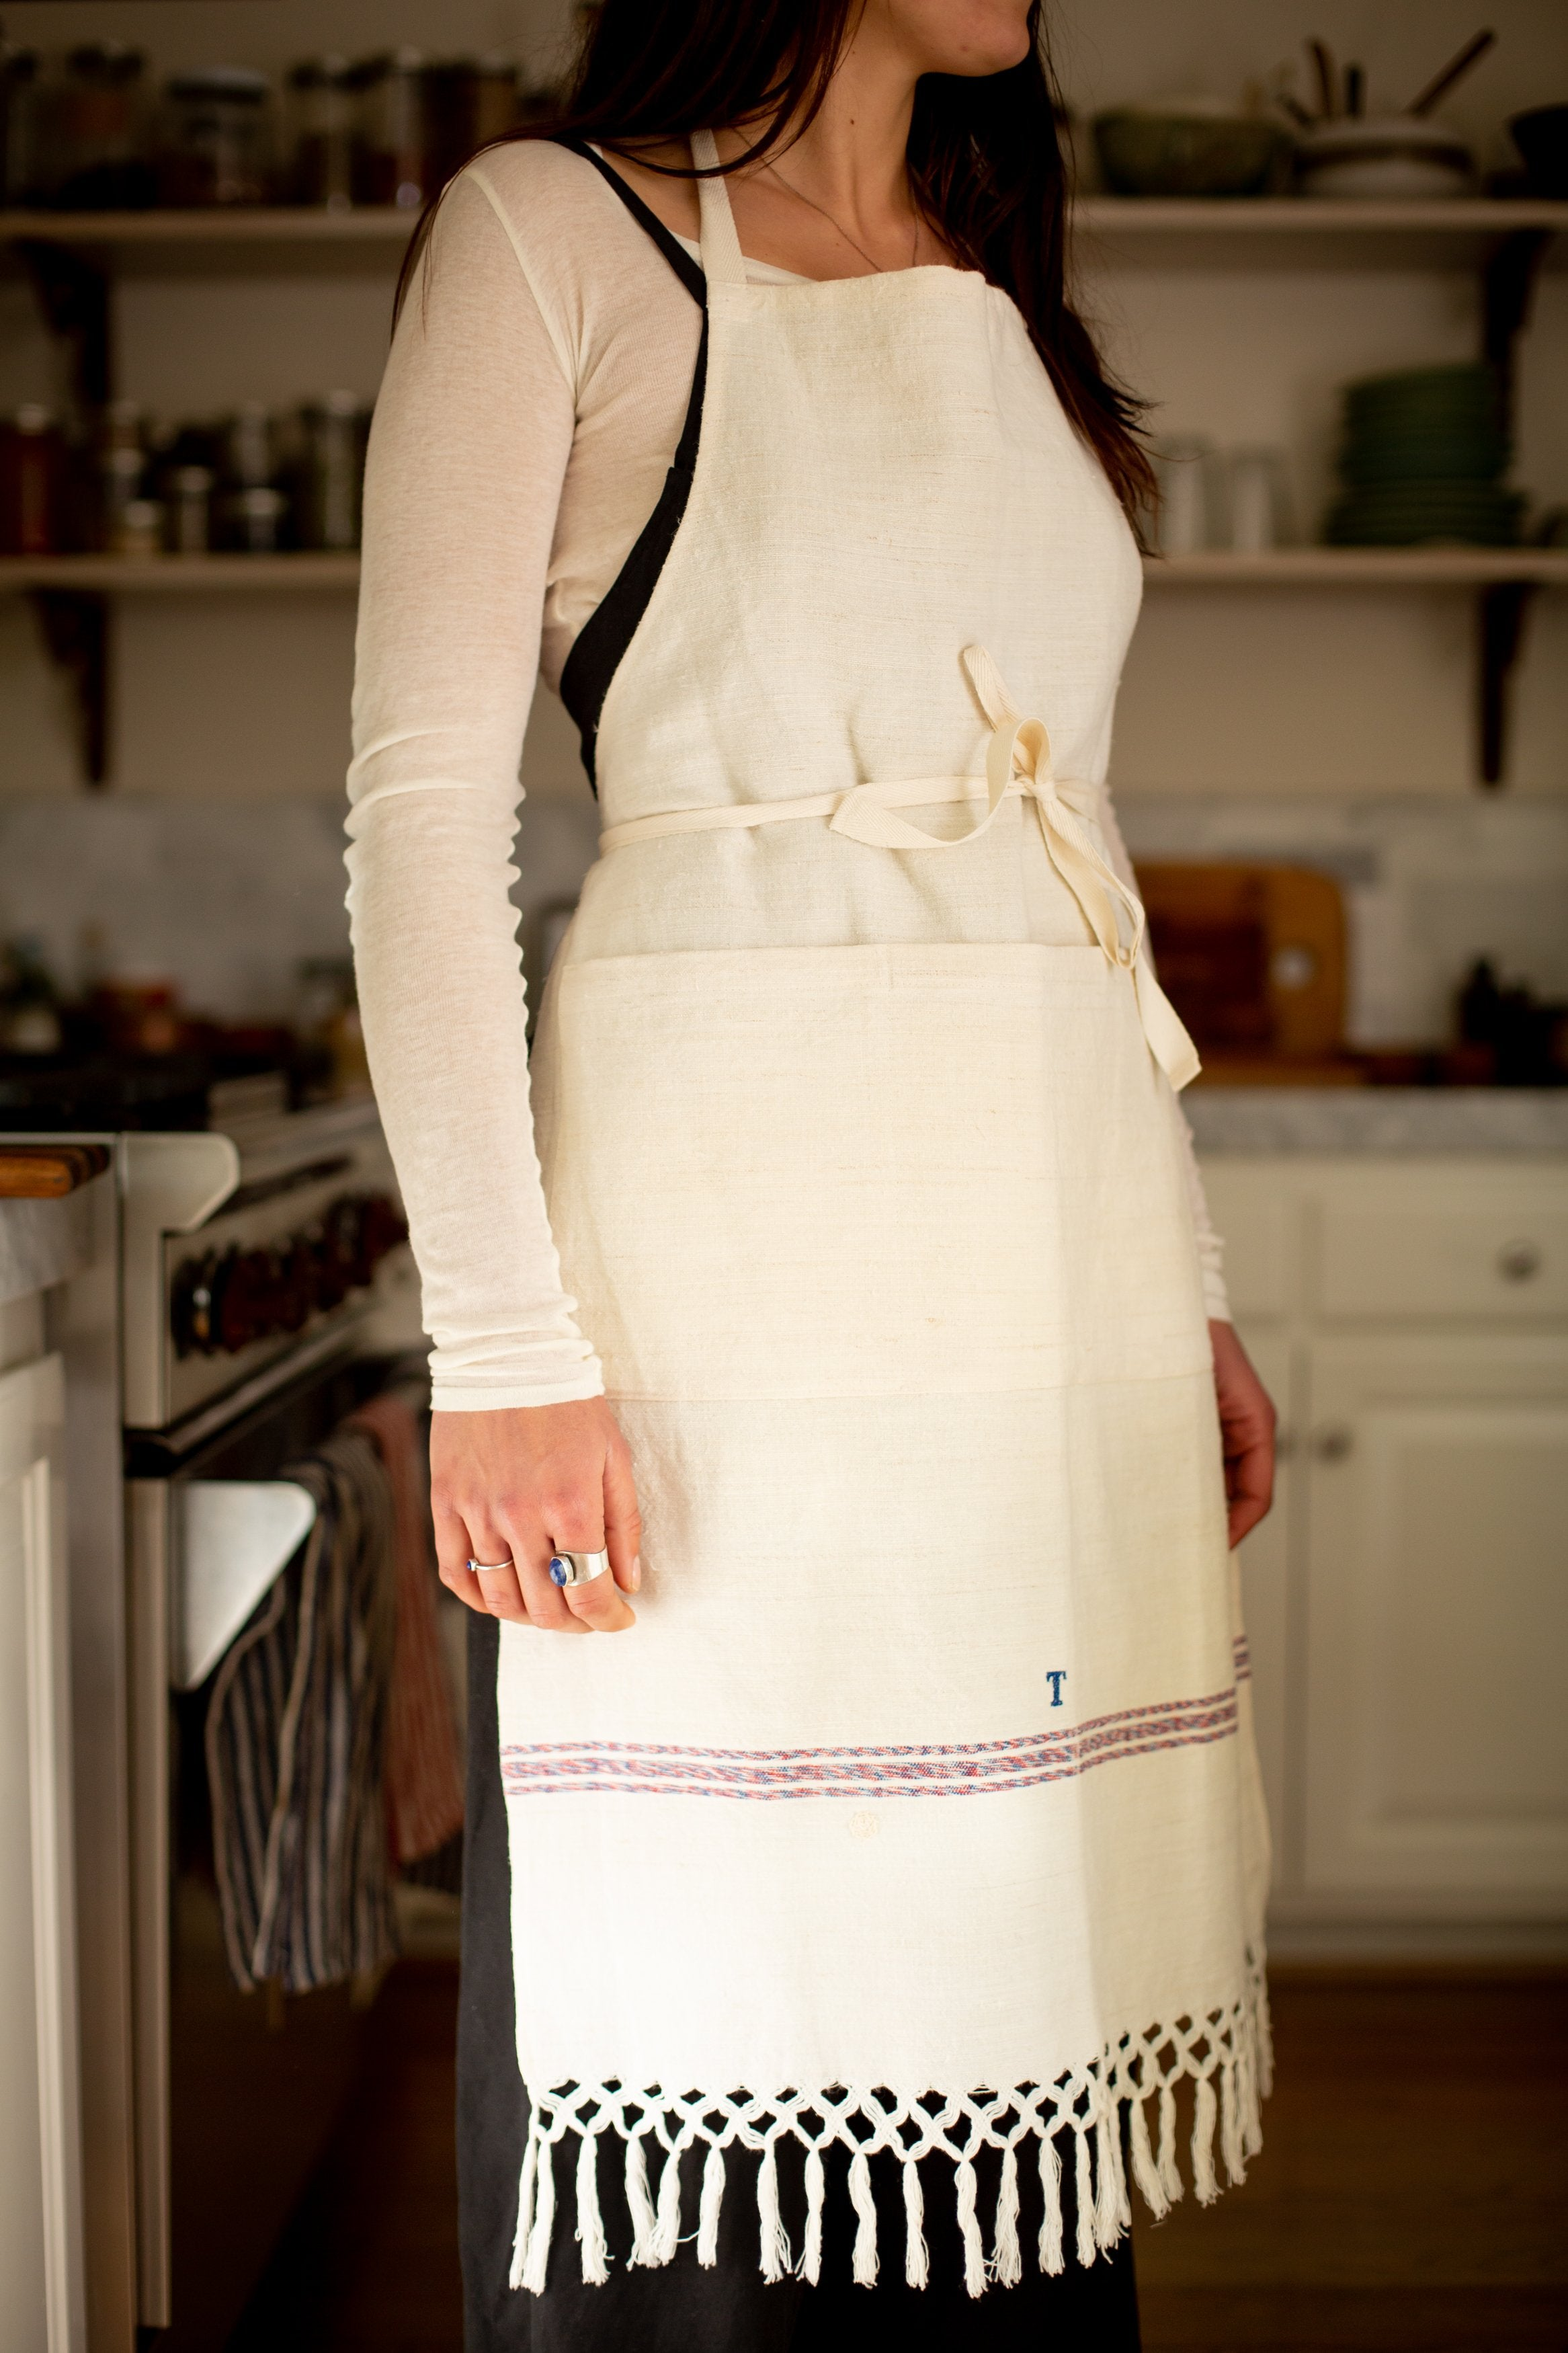 Apron: Full style, vintage handwoven Hungarian hemp - A36